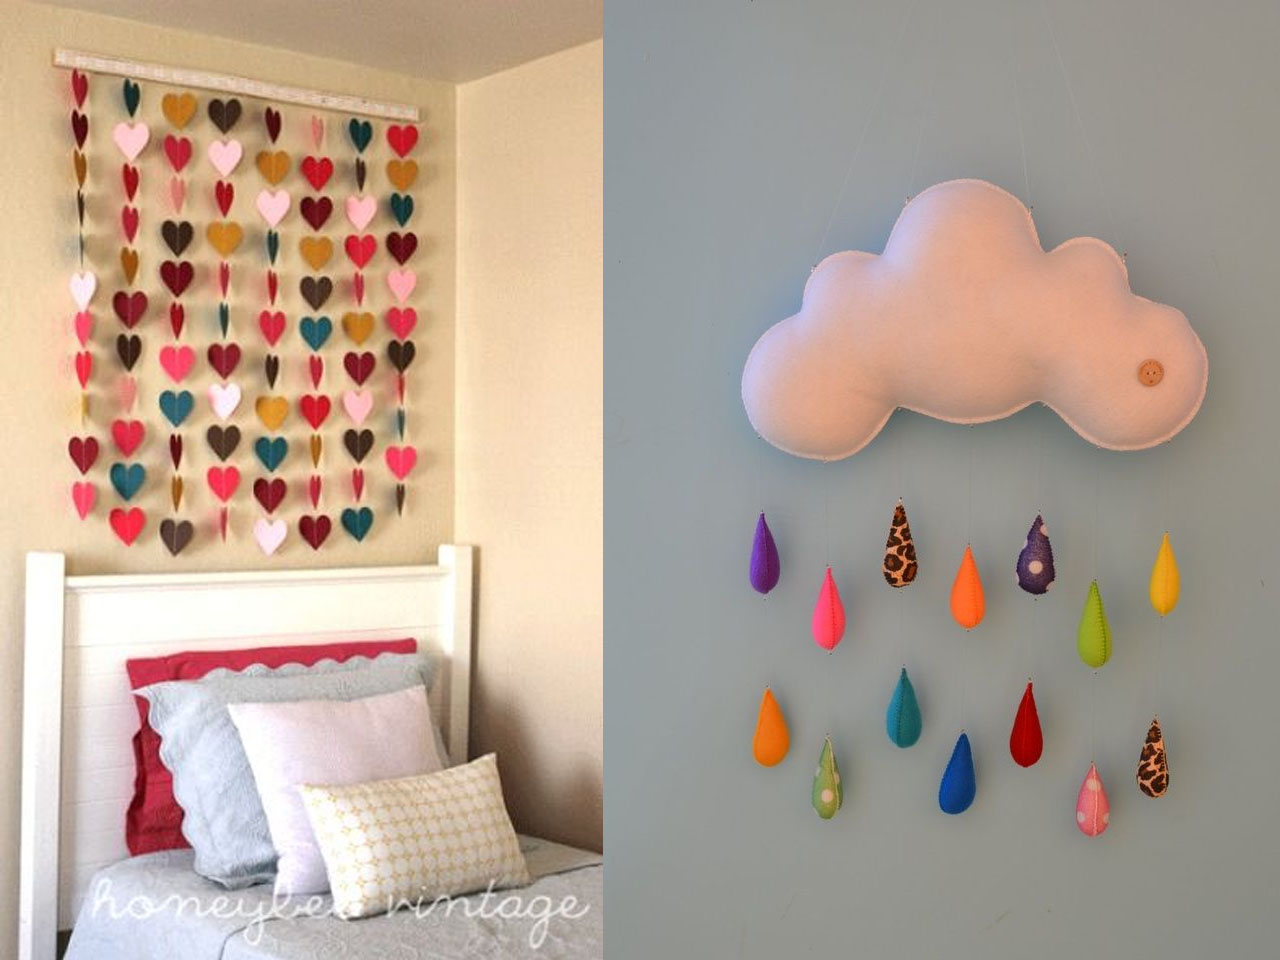 10 ideas de decoraci n de paredes con fieltro for Adornos colgar pared